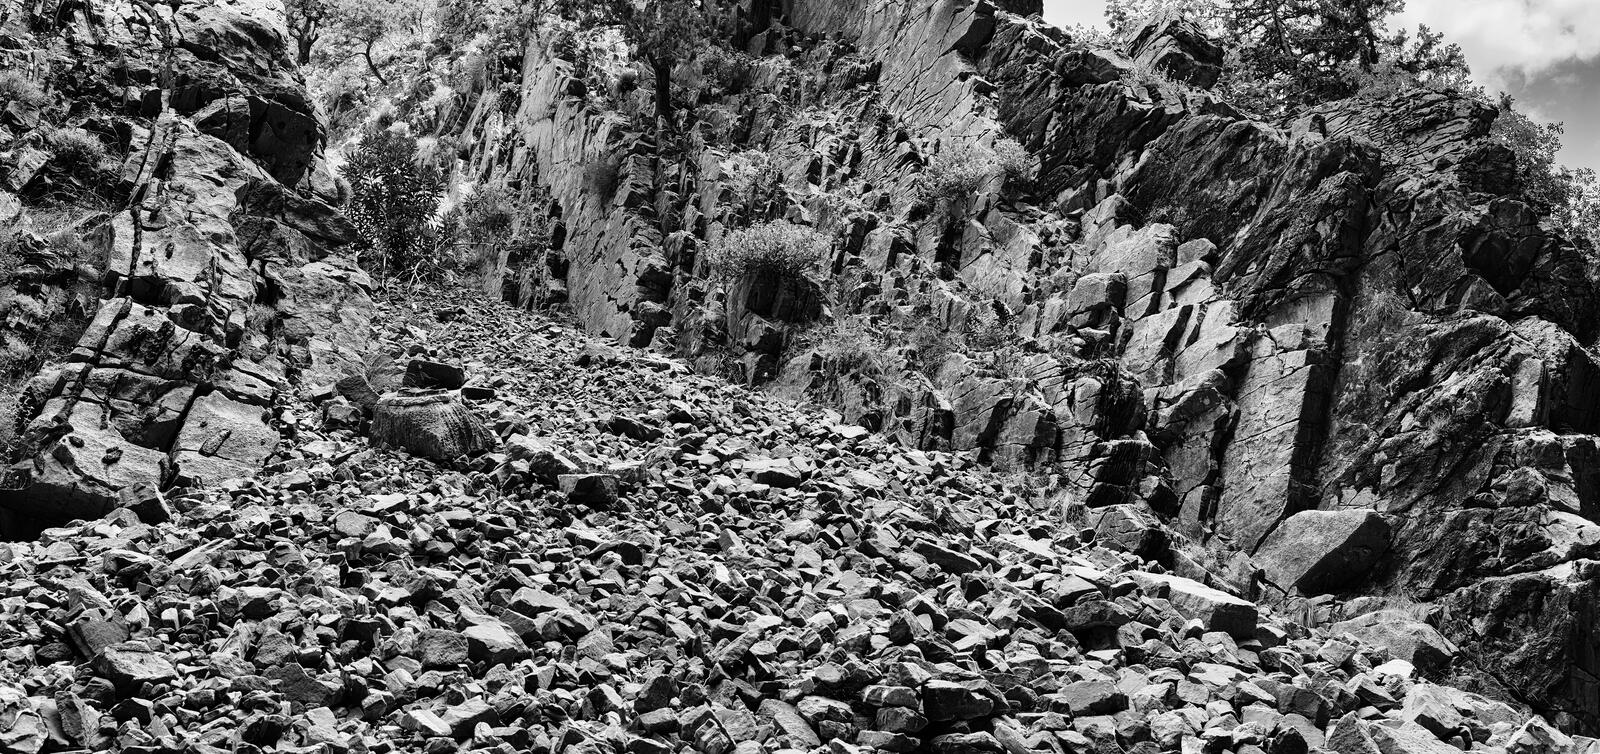 Horizontal black and white mountain landslide landscape backgrou stock images